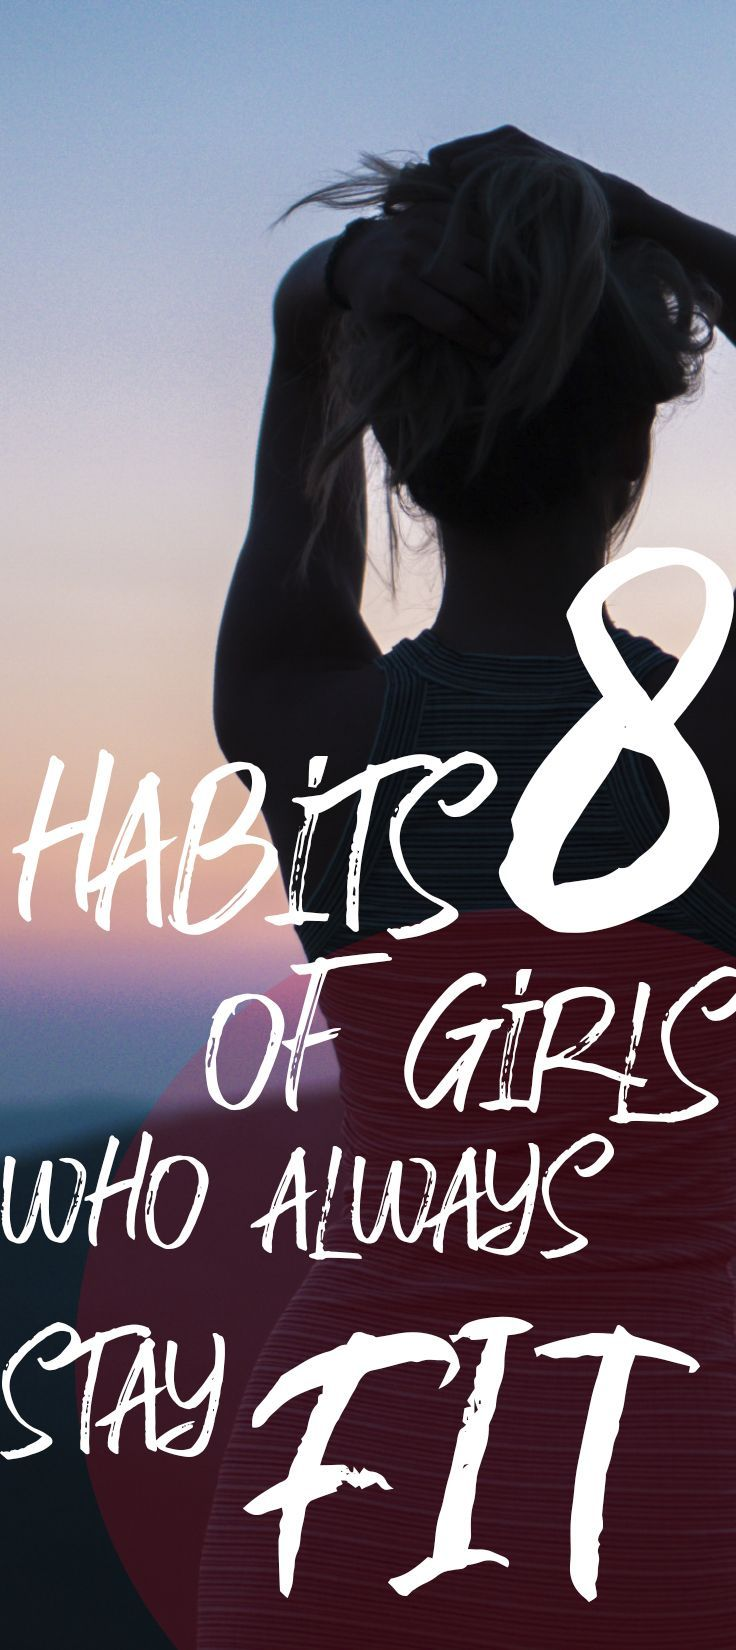 #stayfit  #fitness  #fitgirl #girls #guide?  Looking for a fit girls guide? Here are 8 habits by gir...